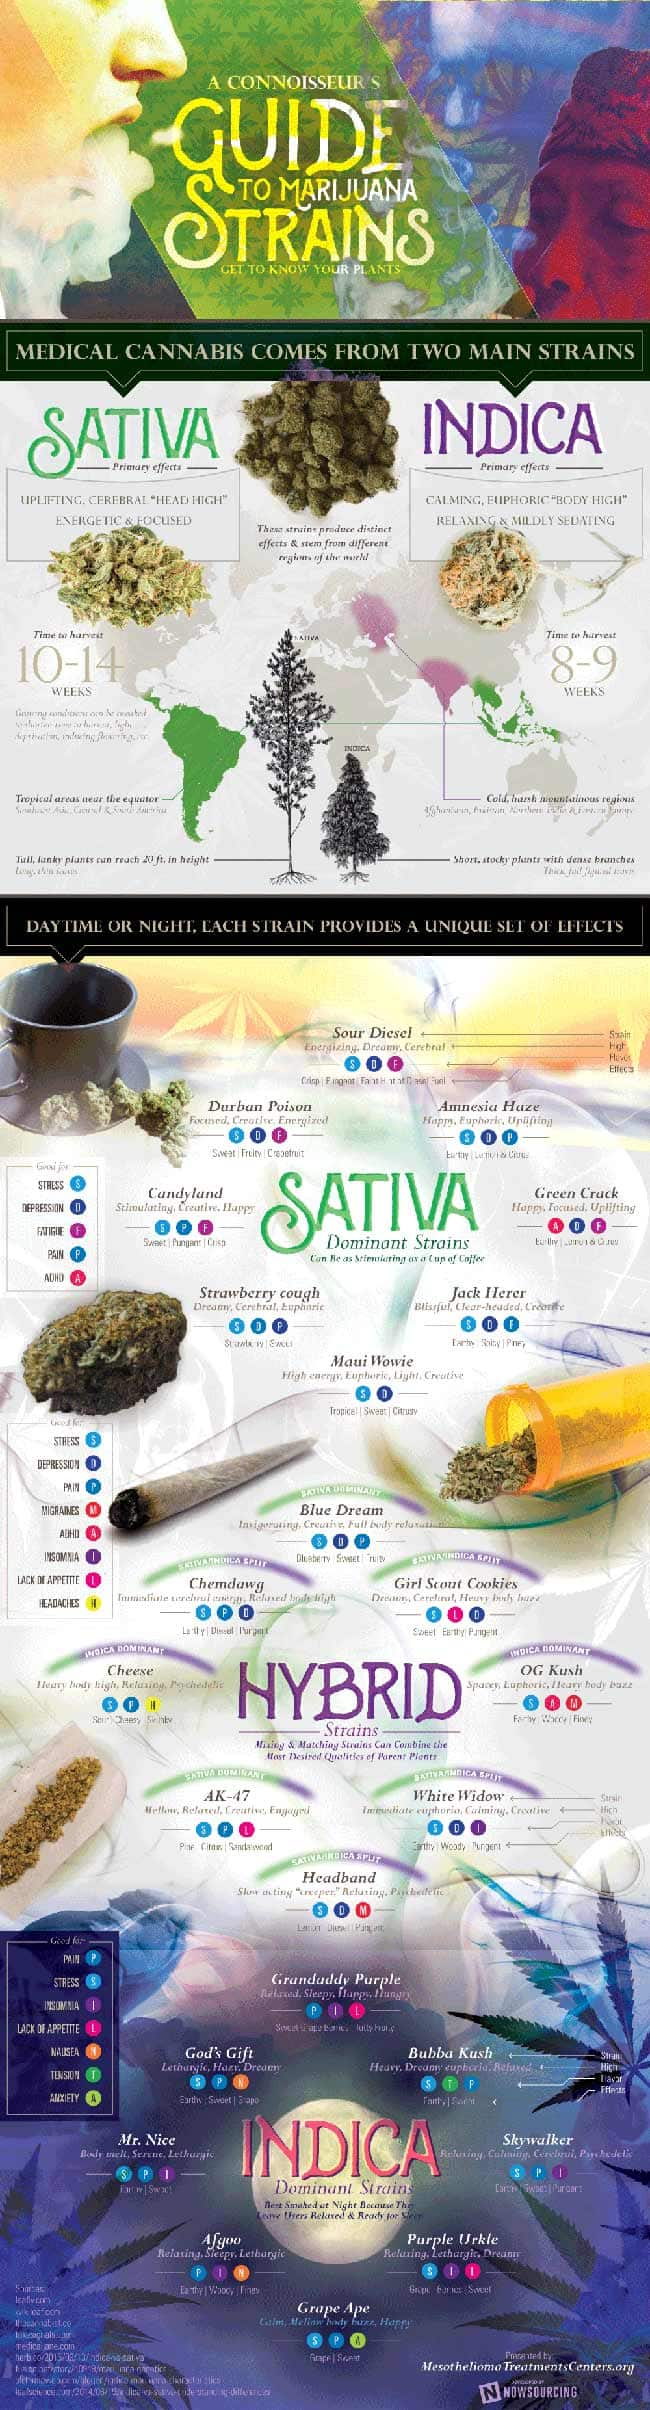 Strain,Indica,Sativa,difference,cannabinoids,indica vs sativa,infographic